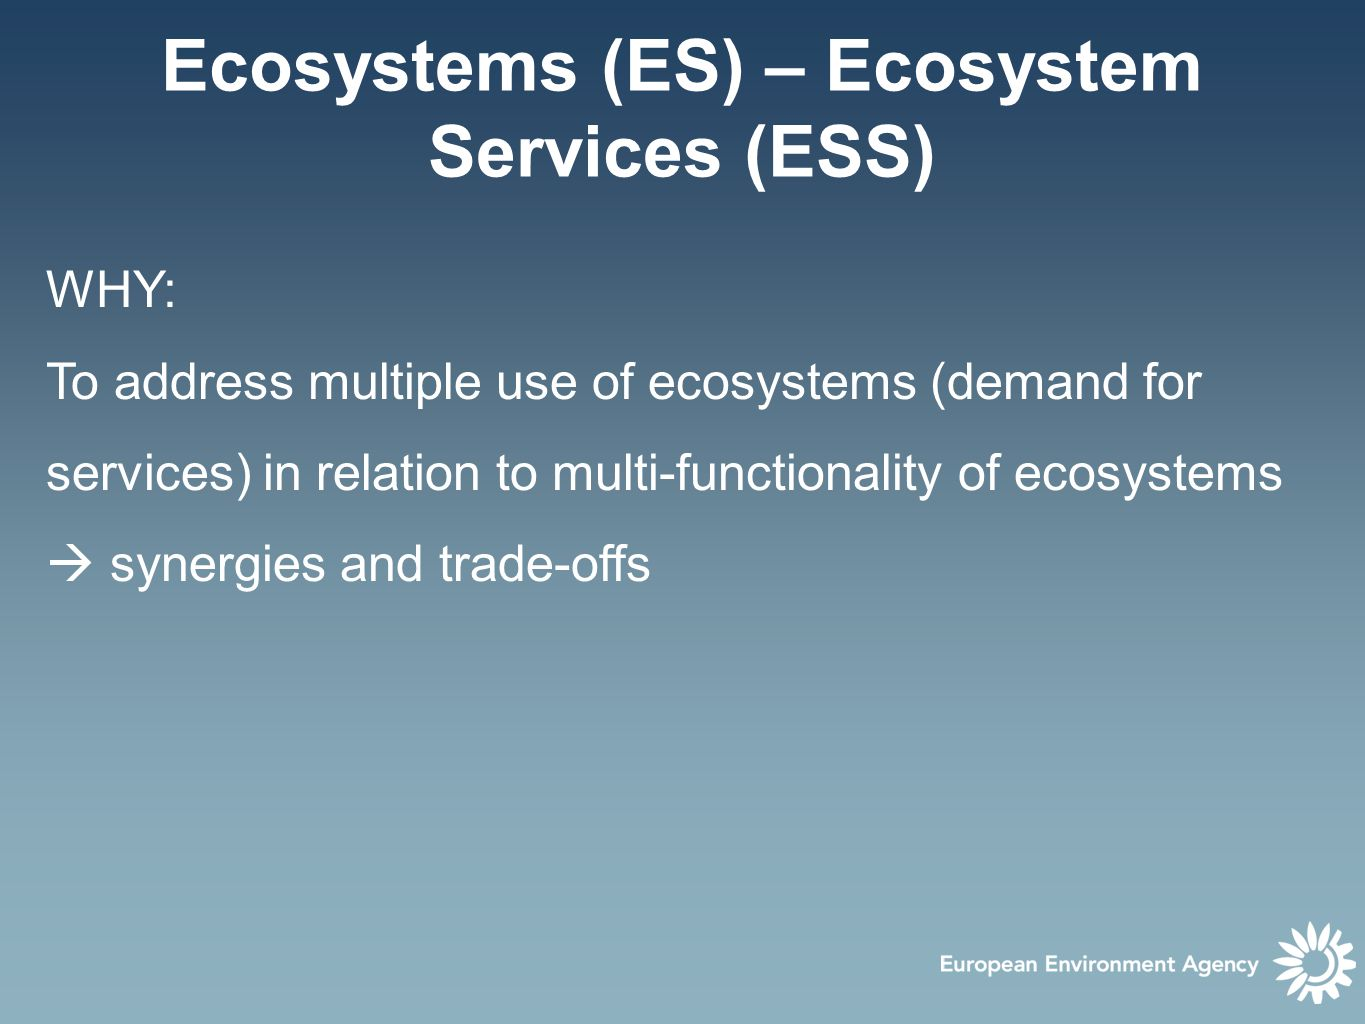 Thank you for your attention markus.erhard@eea.europa.eu EEA: http://www.eea.europa.eu/ Ecosystem Assessment: http://biodiversity.europa.eu/ecosystem-assessments Ecosystem Service Classification: www.cices.eu EU Beyond GDP: http://www.beyond-gdp.eu/ UNSD-SEEA: http://unstats.un.org/unsd/envaccounting/seea.asp Eye on Earth: http://watch.eyeonearth.org/